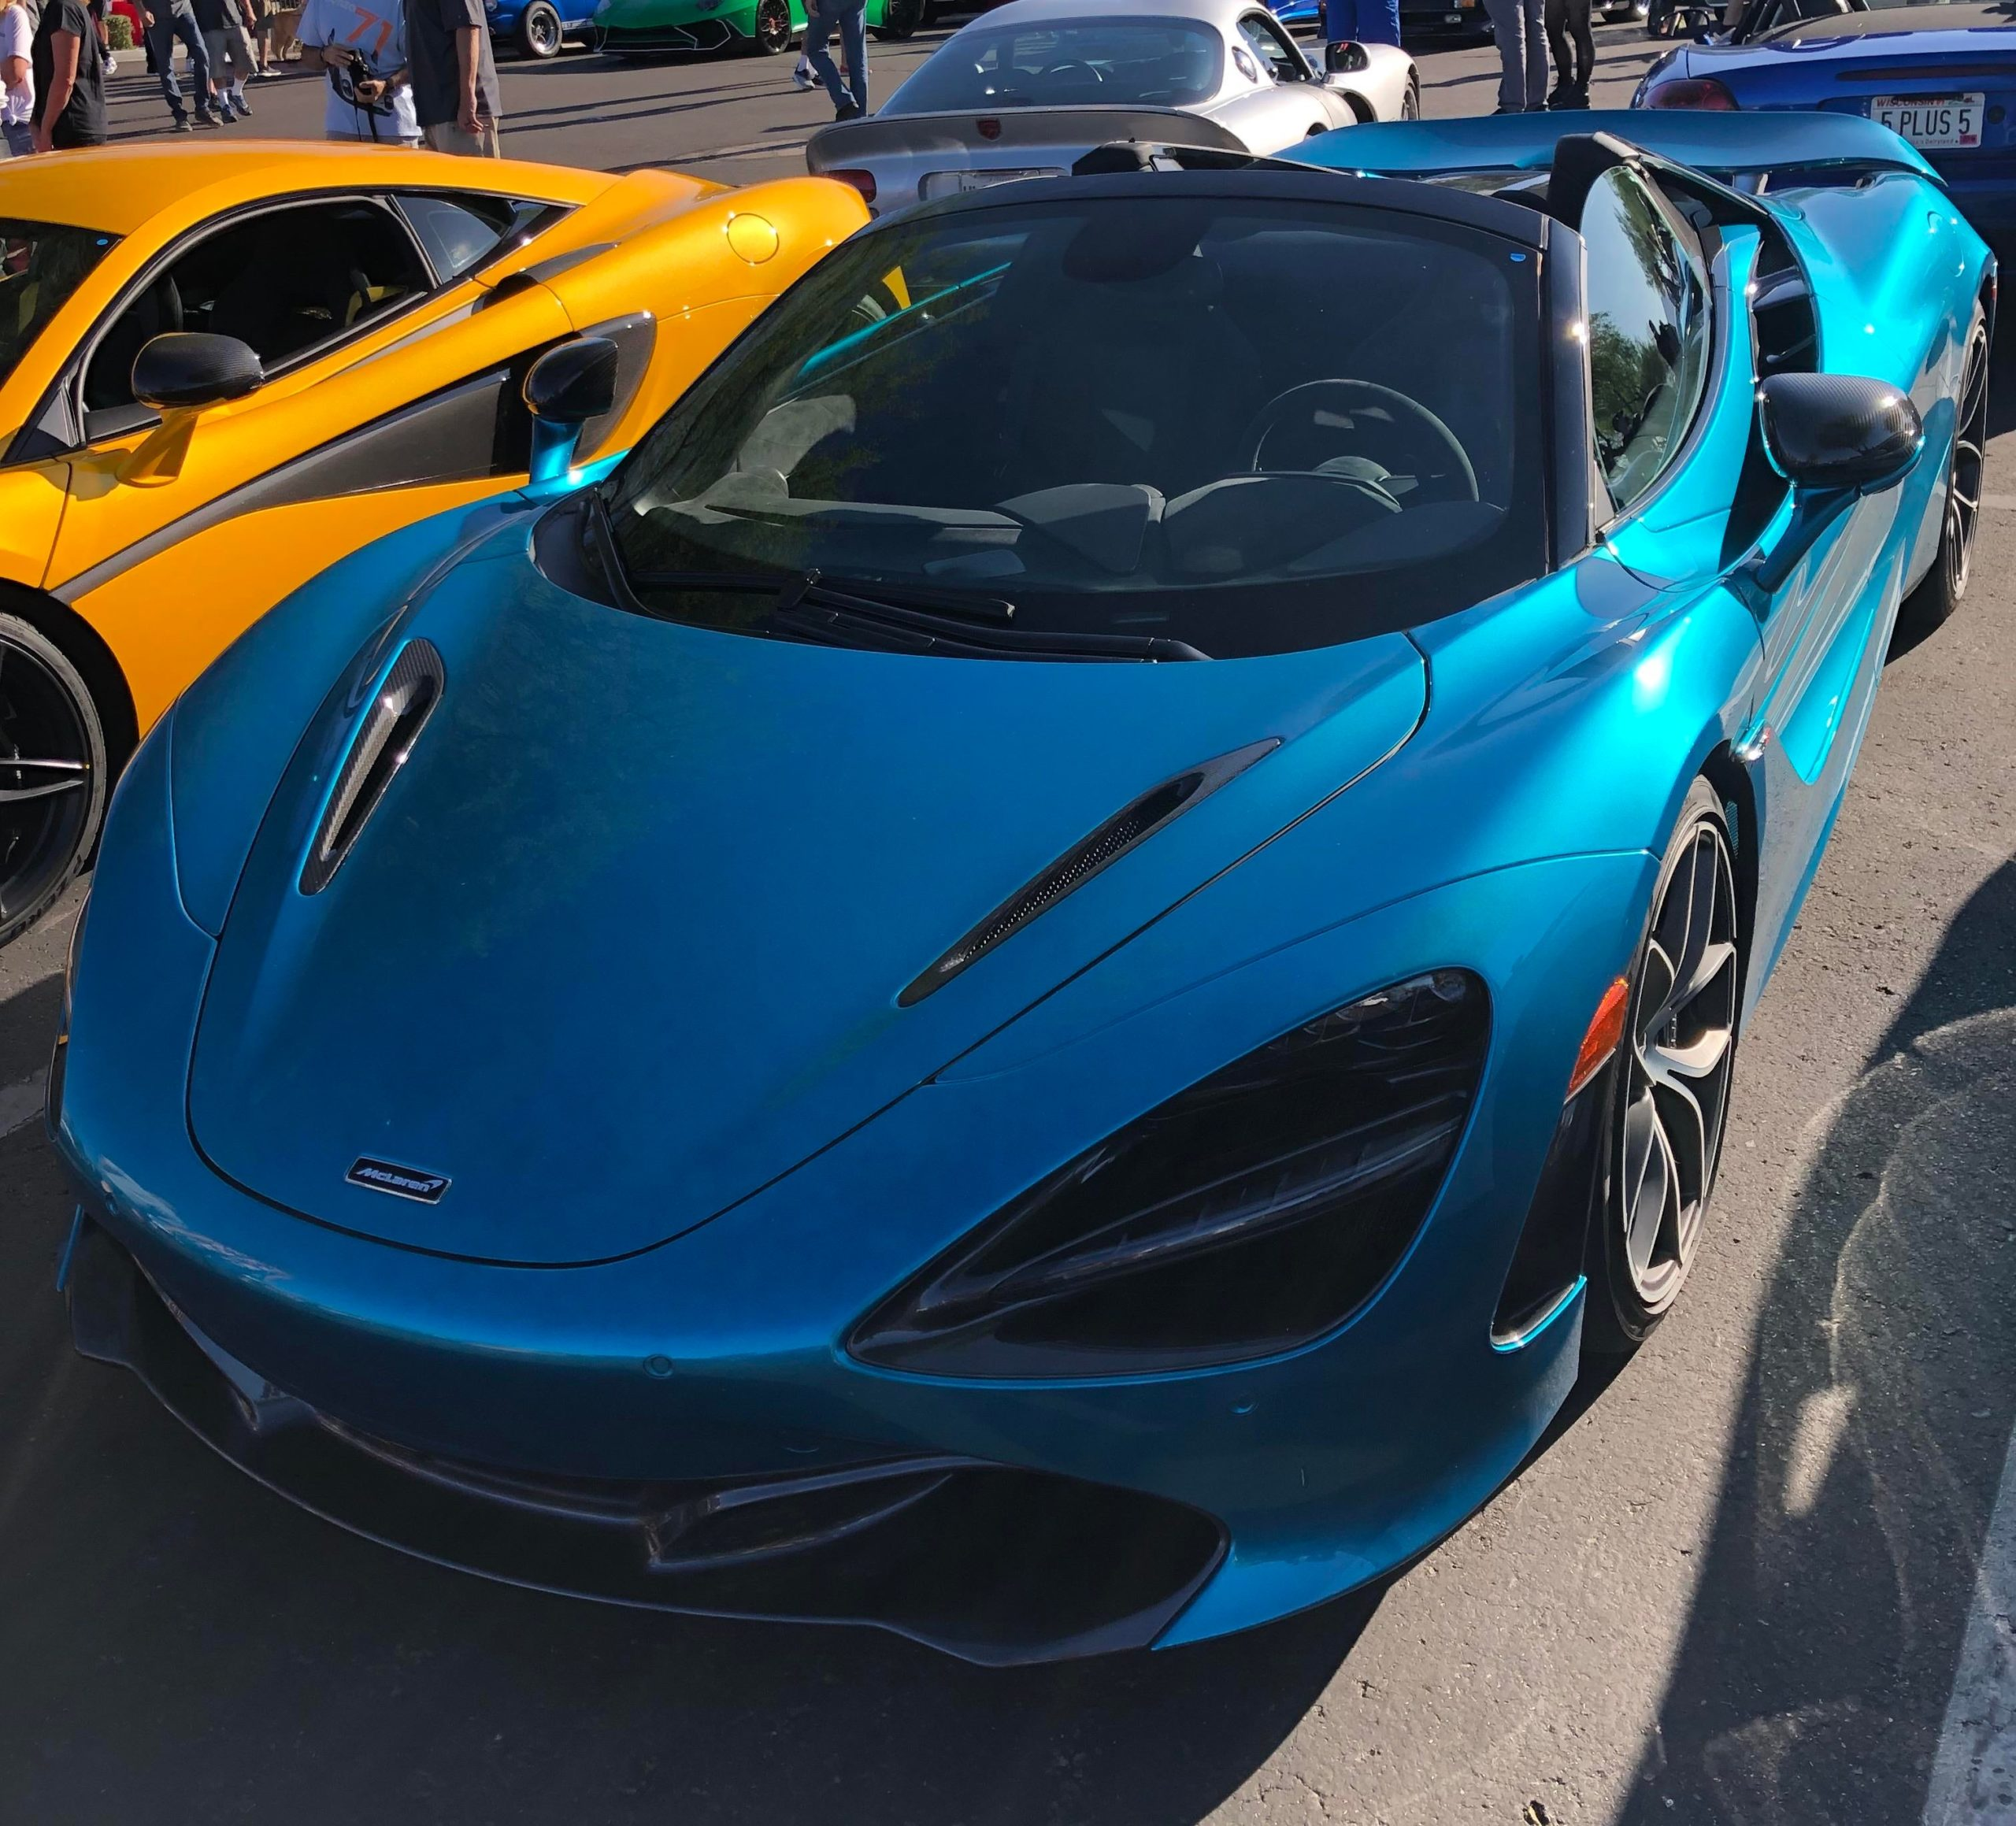 Stunning McLaren 720s at a car show